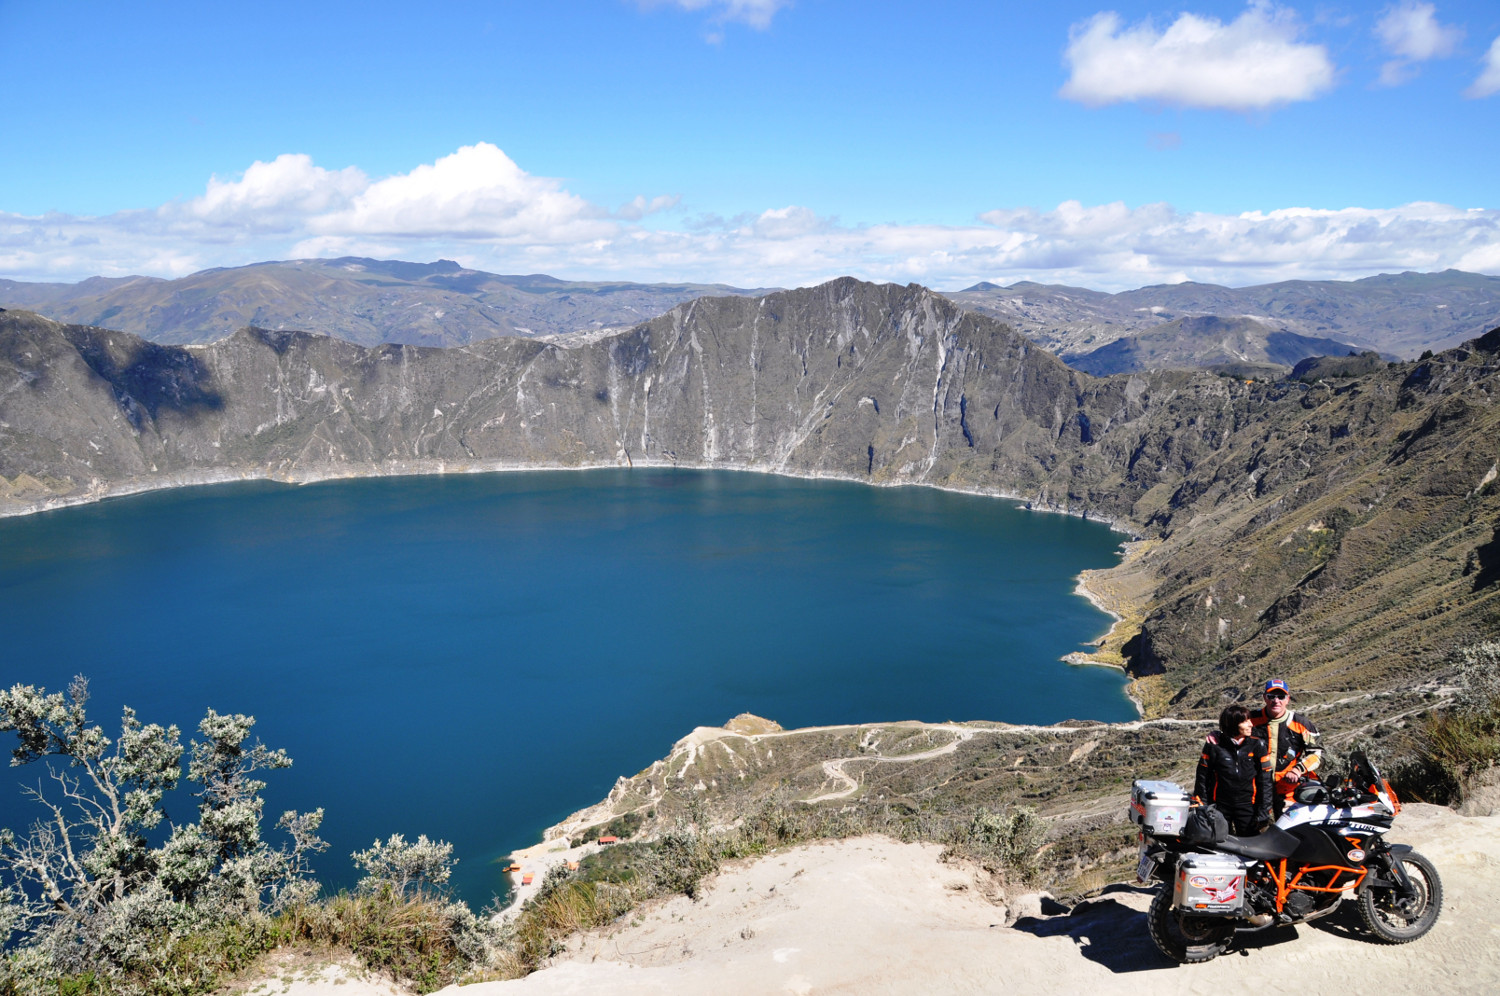 Am Kratersee Lago Quilotoa | By the Lago Quilotoa crater lake